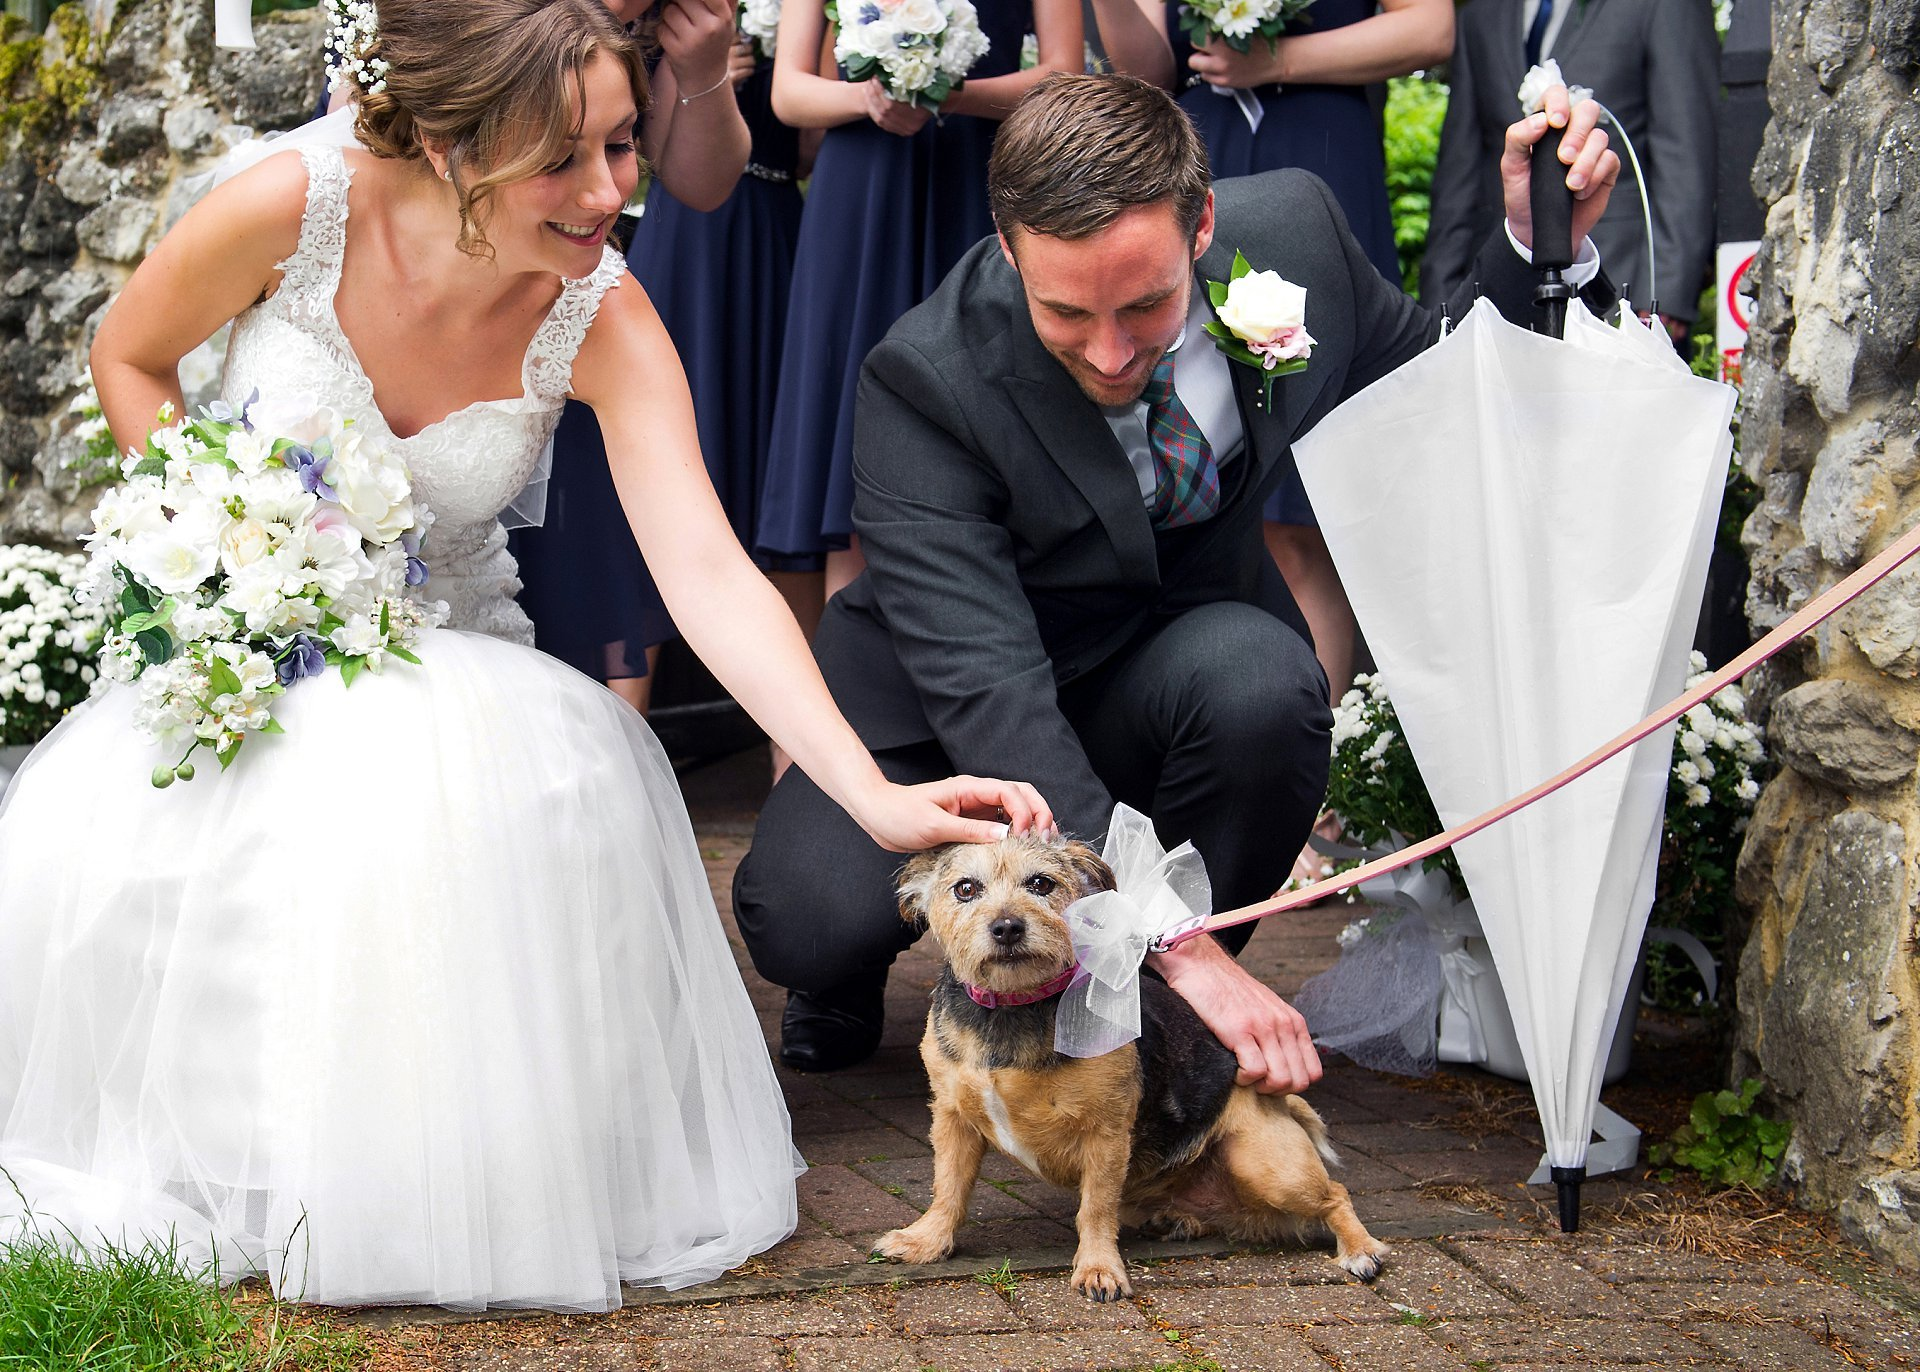 It's hard to exclude the family dog from your wedding so here was a surprise for the bride and groom. A friend brought along the family pet, decorated in an adorable bow, to surprise teh bride as she walked out of St Peter's Ditton. The bride's reaction was priceless and the dog was thrilled